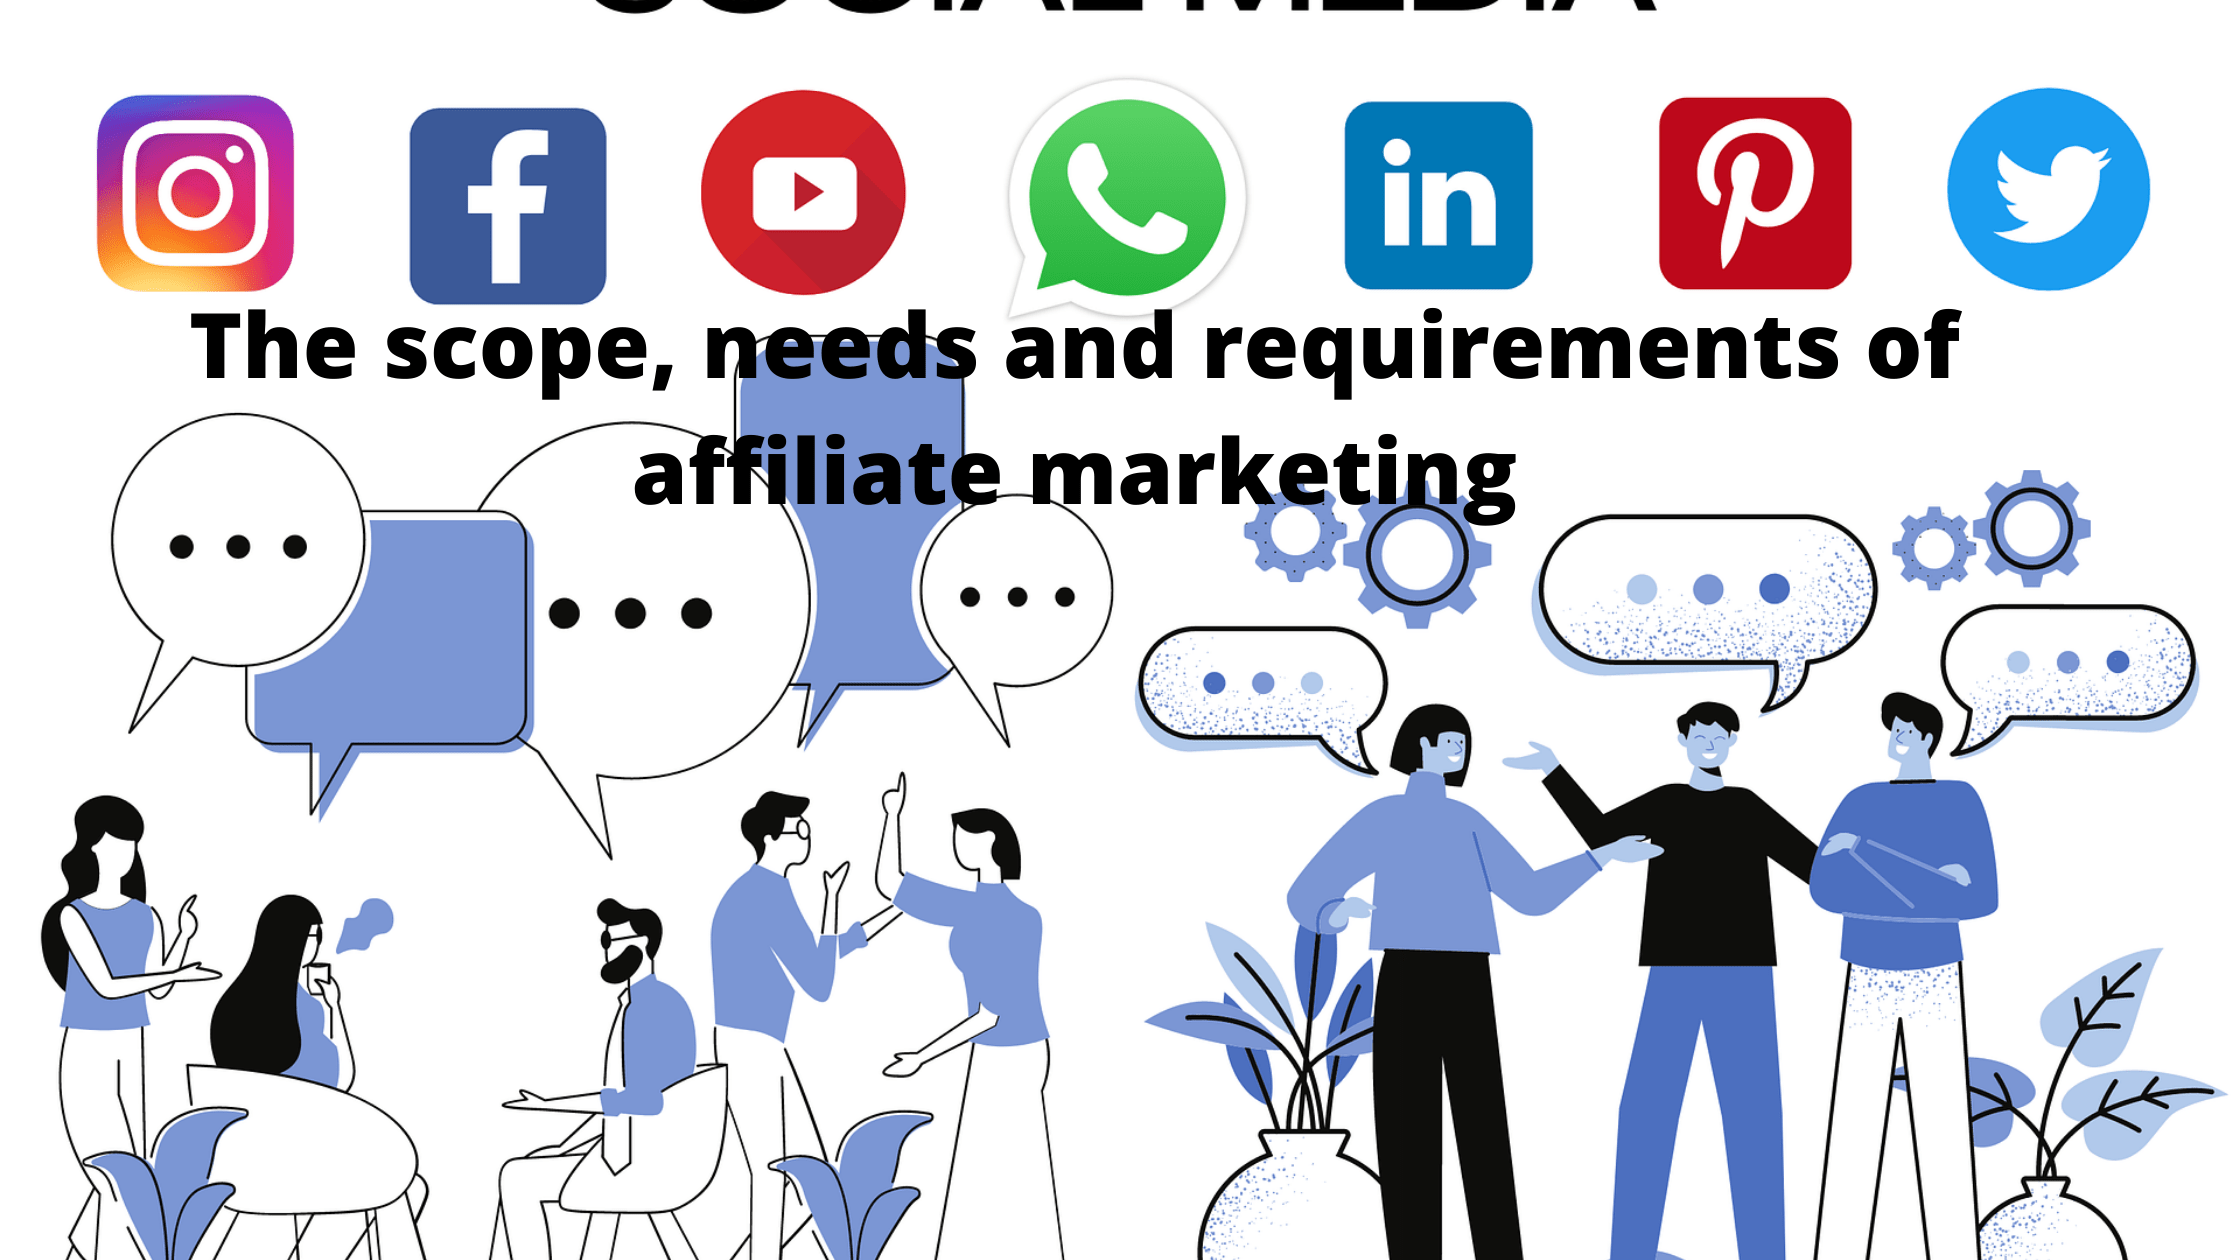 The scope, needs and requirements of affiliate marketing